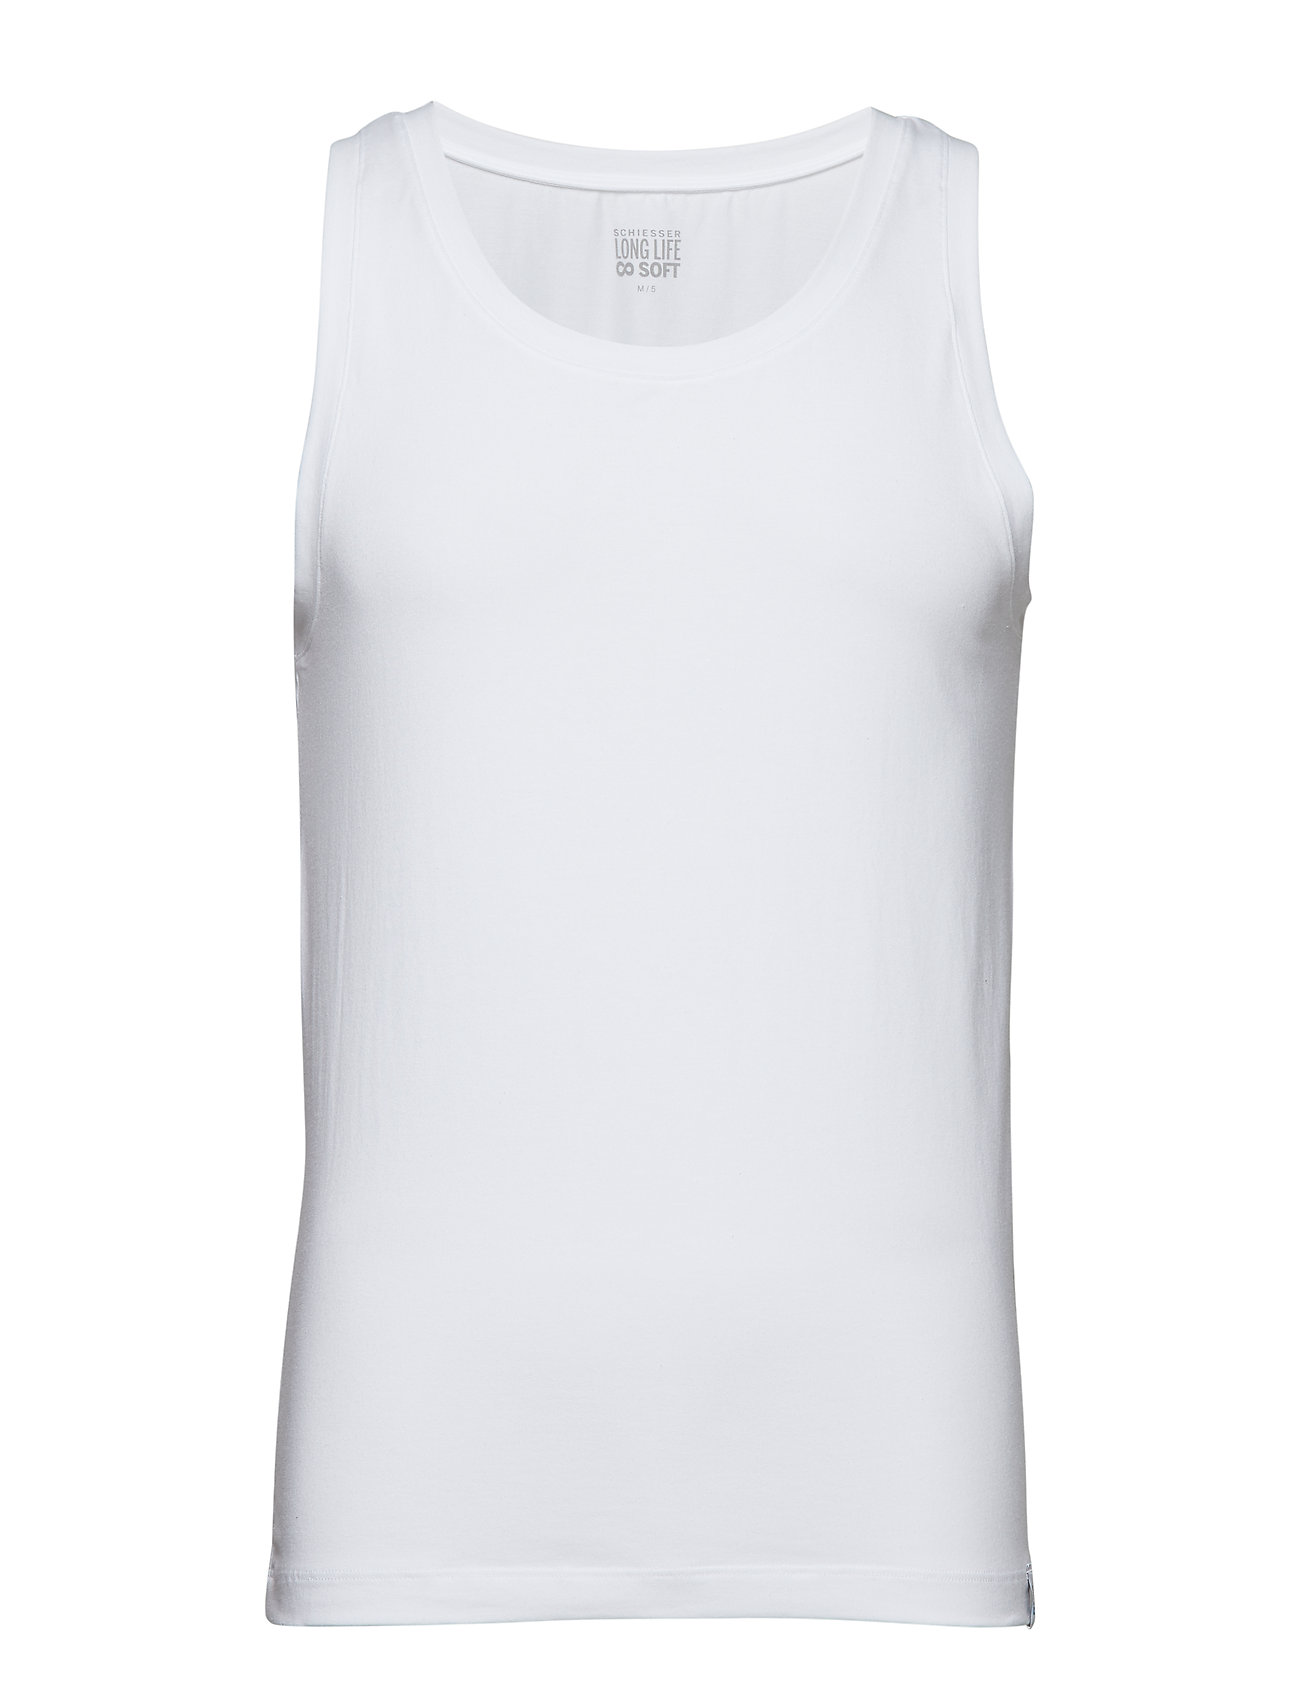 Image of Singlet Underwear T-shirts Sleeveless Hvid Schiesser (3137822713)